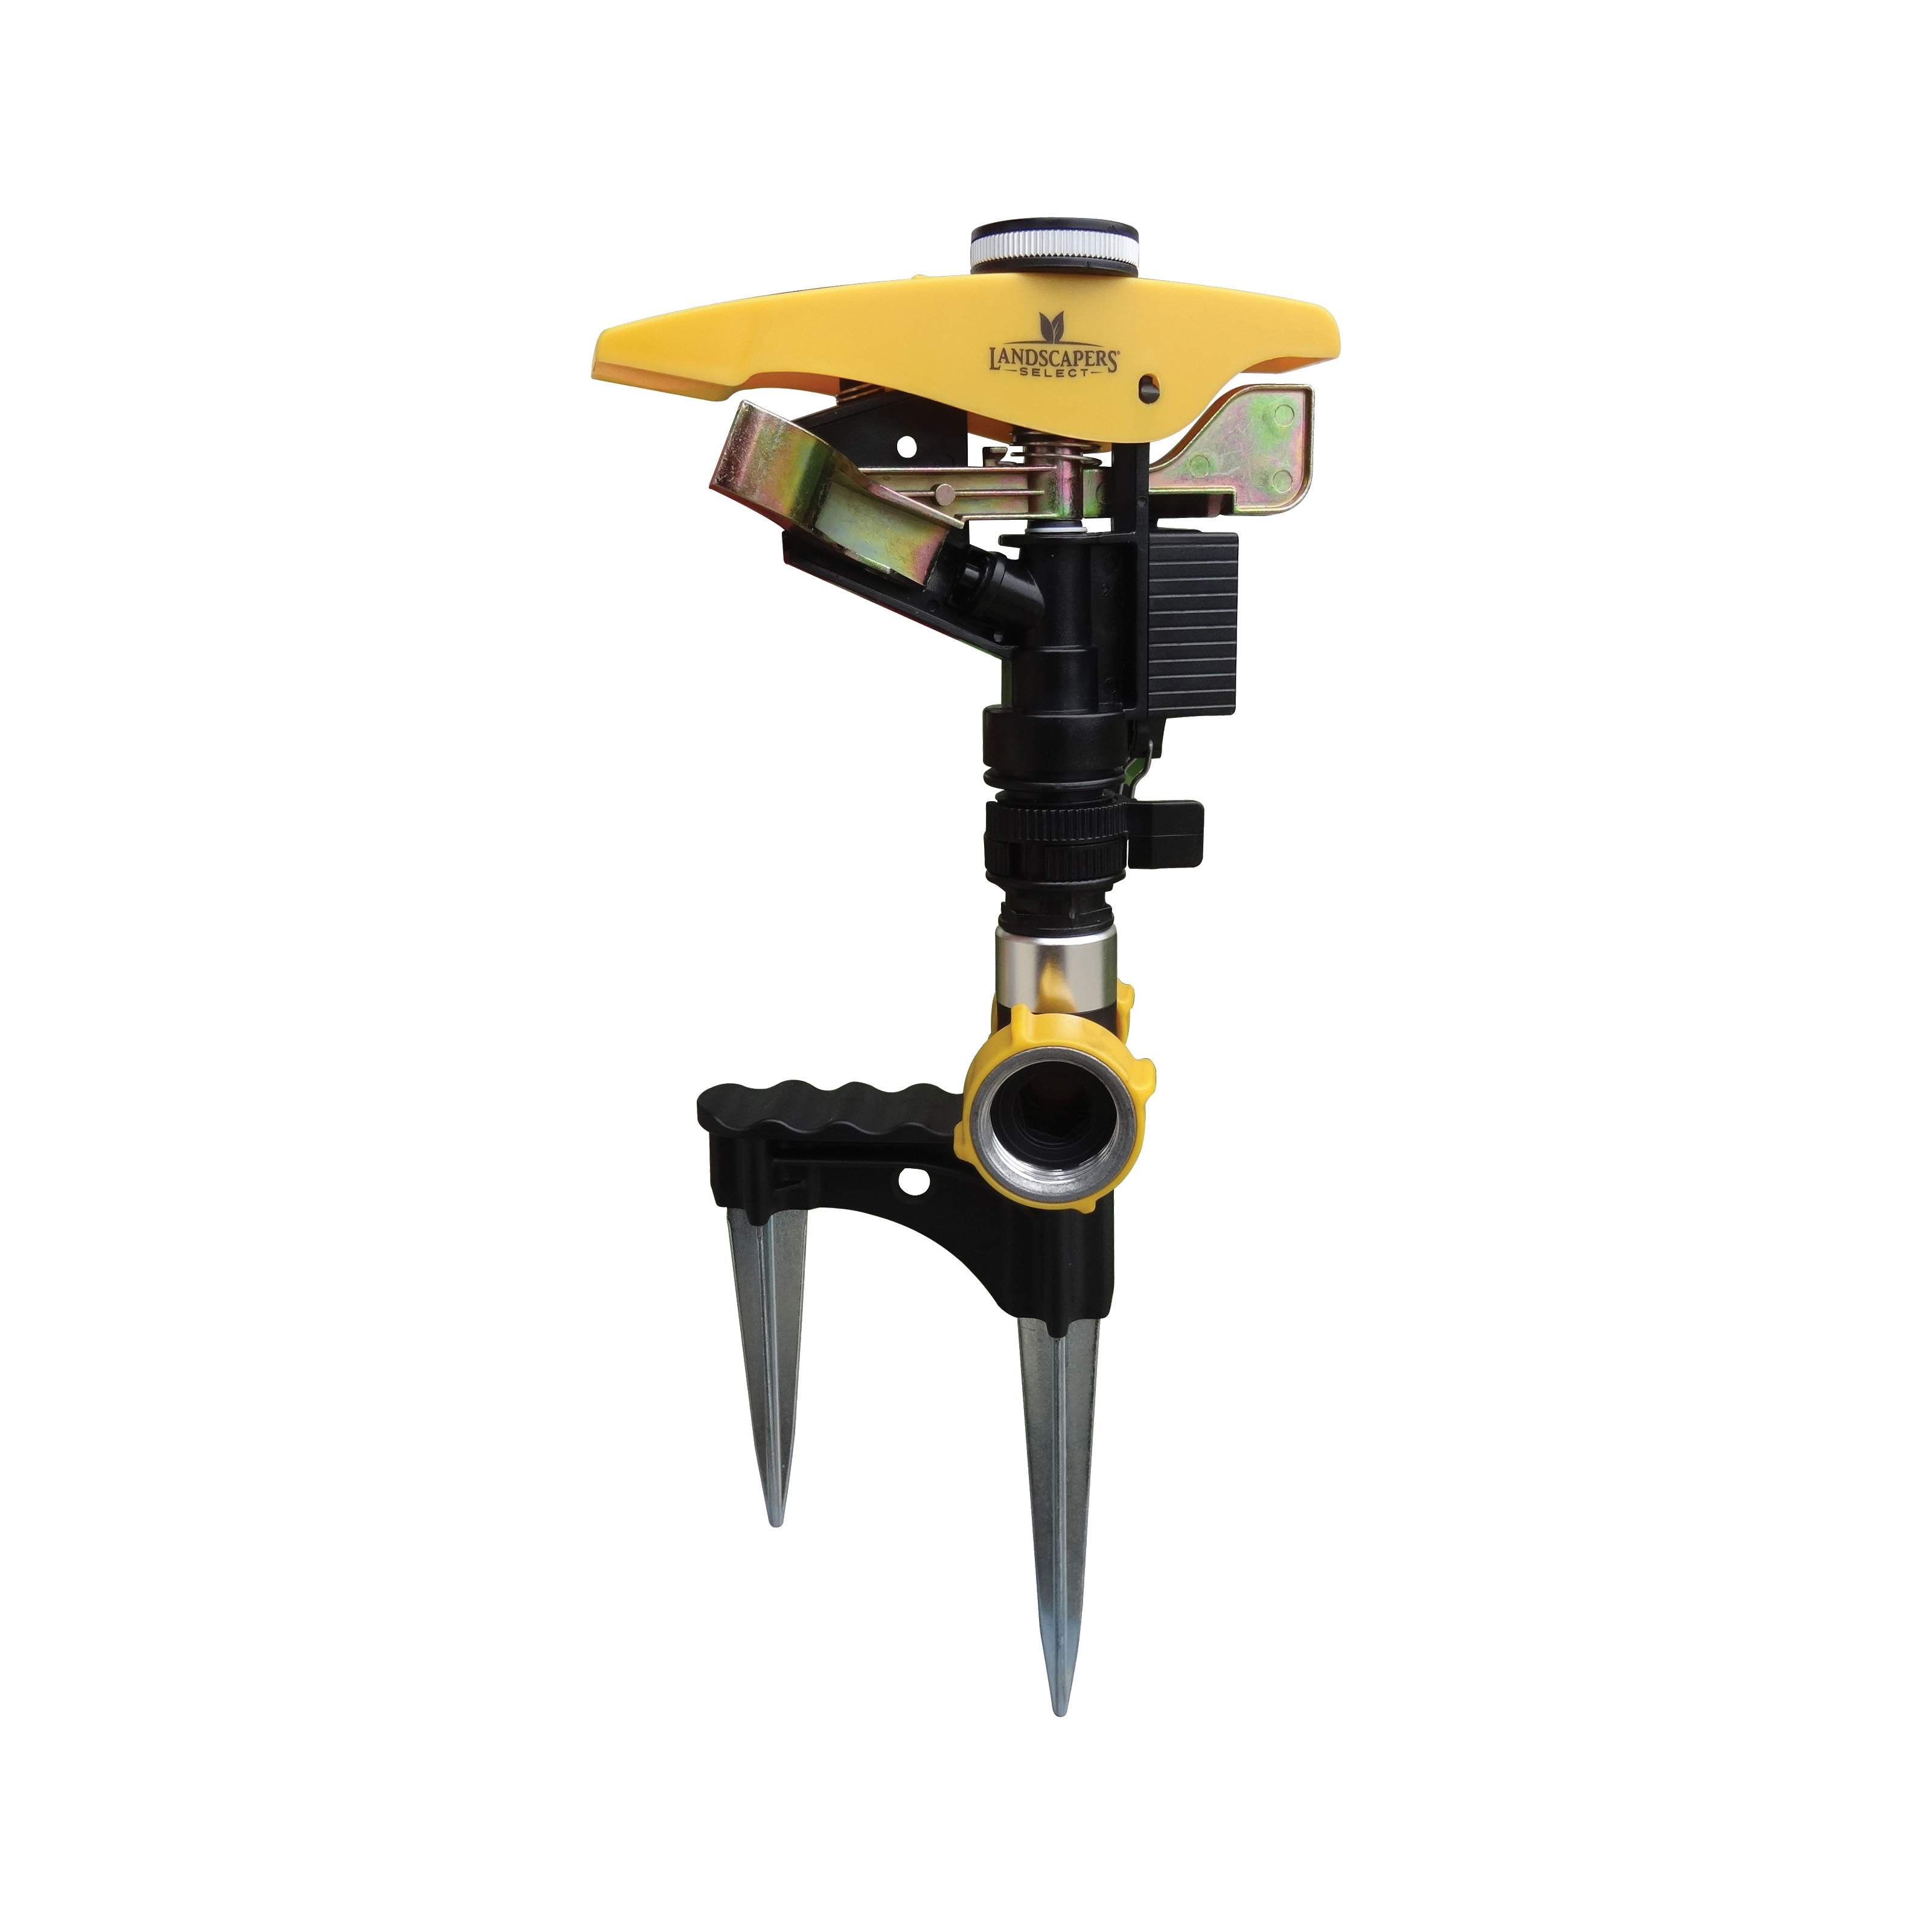 Picture of Landscapers Select GS11076 Pulsating Sprinkler Head, 3/4 in Connection, Female/Male, Metal